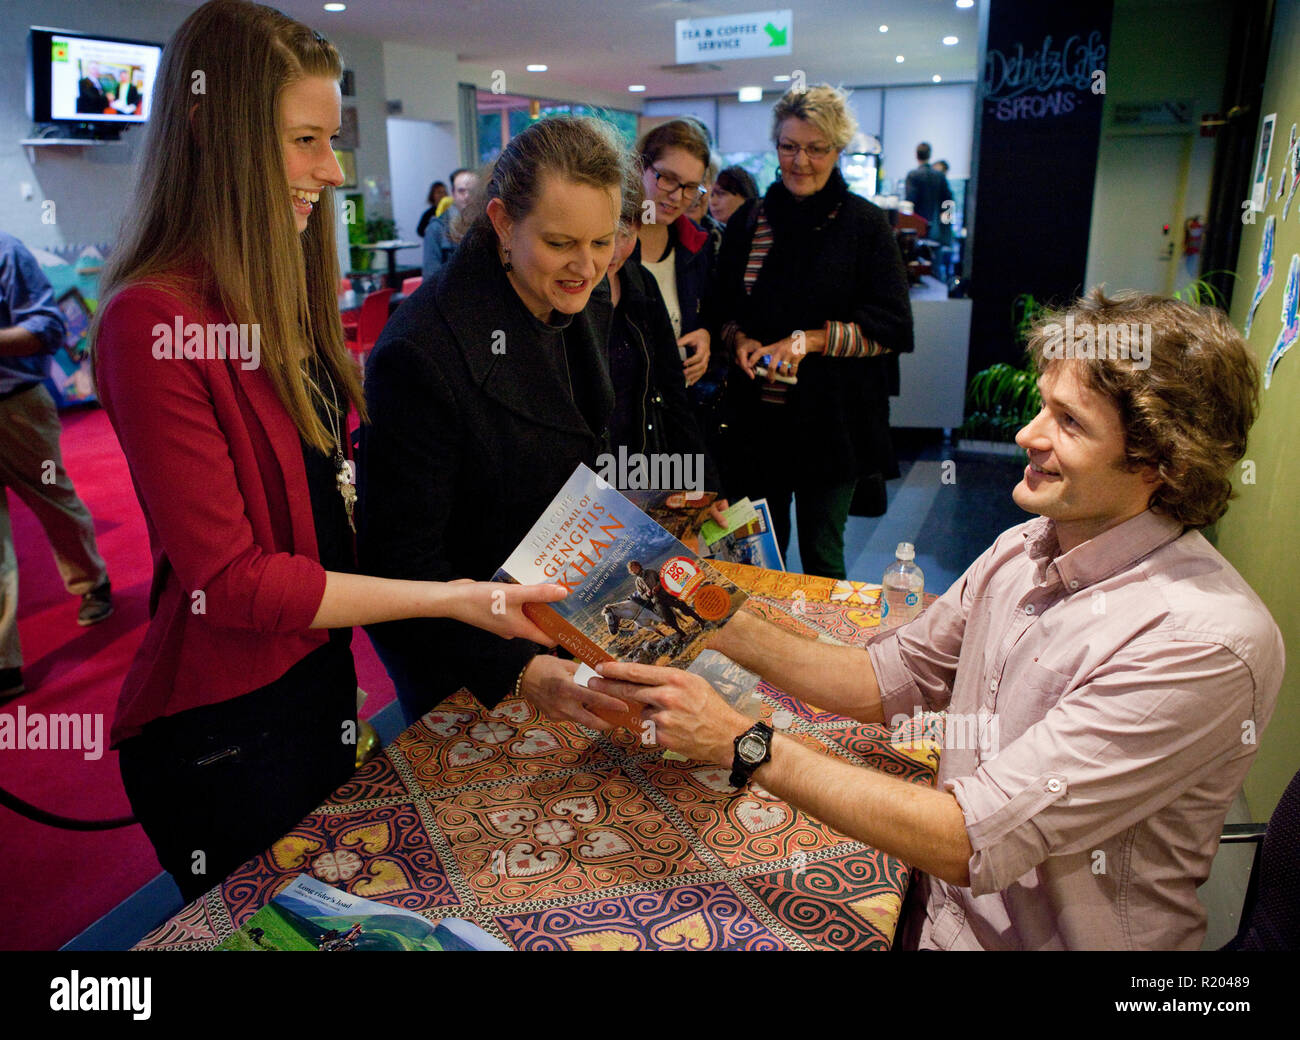 Adventurer and author Tim Cope at a book signing at the West Gippsland Arts Centre. - Stock Image